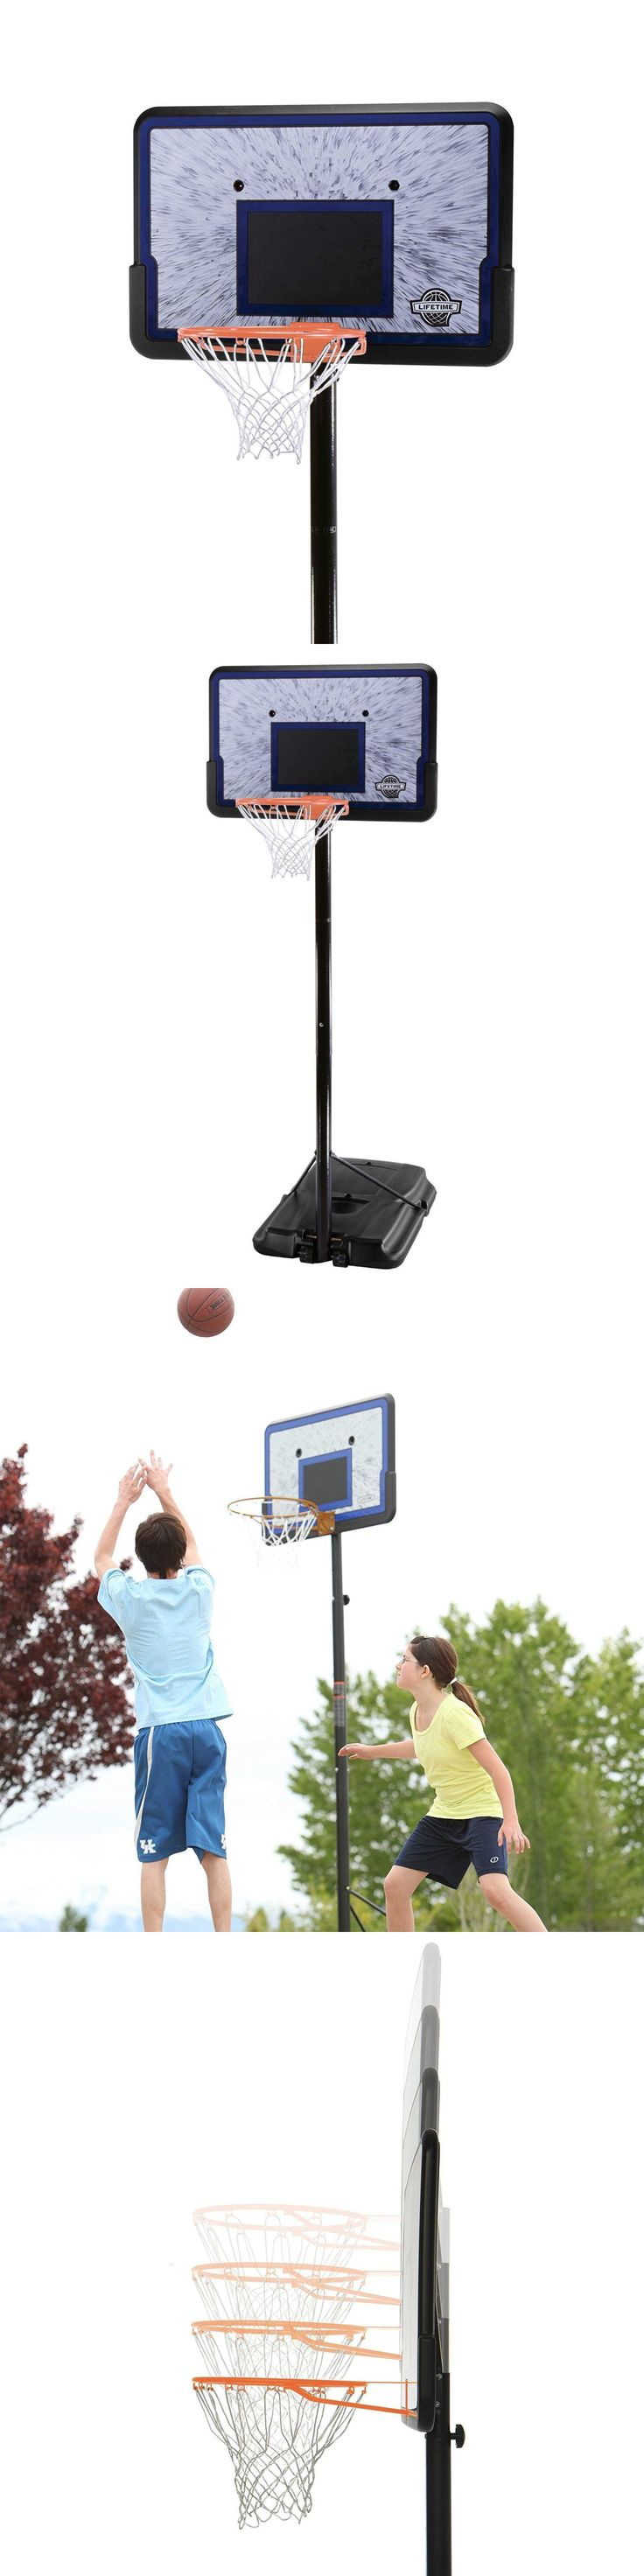 Backboard Systems 21196: Portable Lifetime 1221 Pro Court Height Adjustable Portable Basketball System -> BUY IT NOW ONLY: $97.99 on eBay!